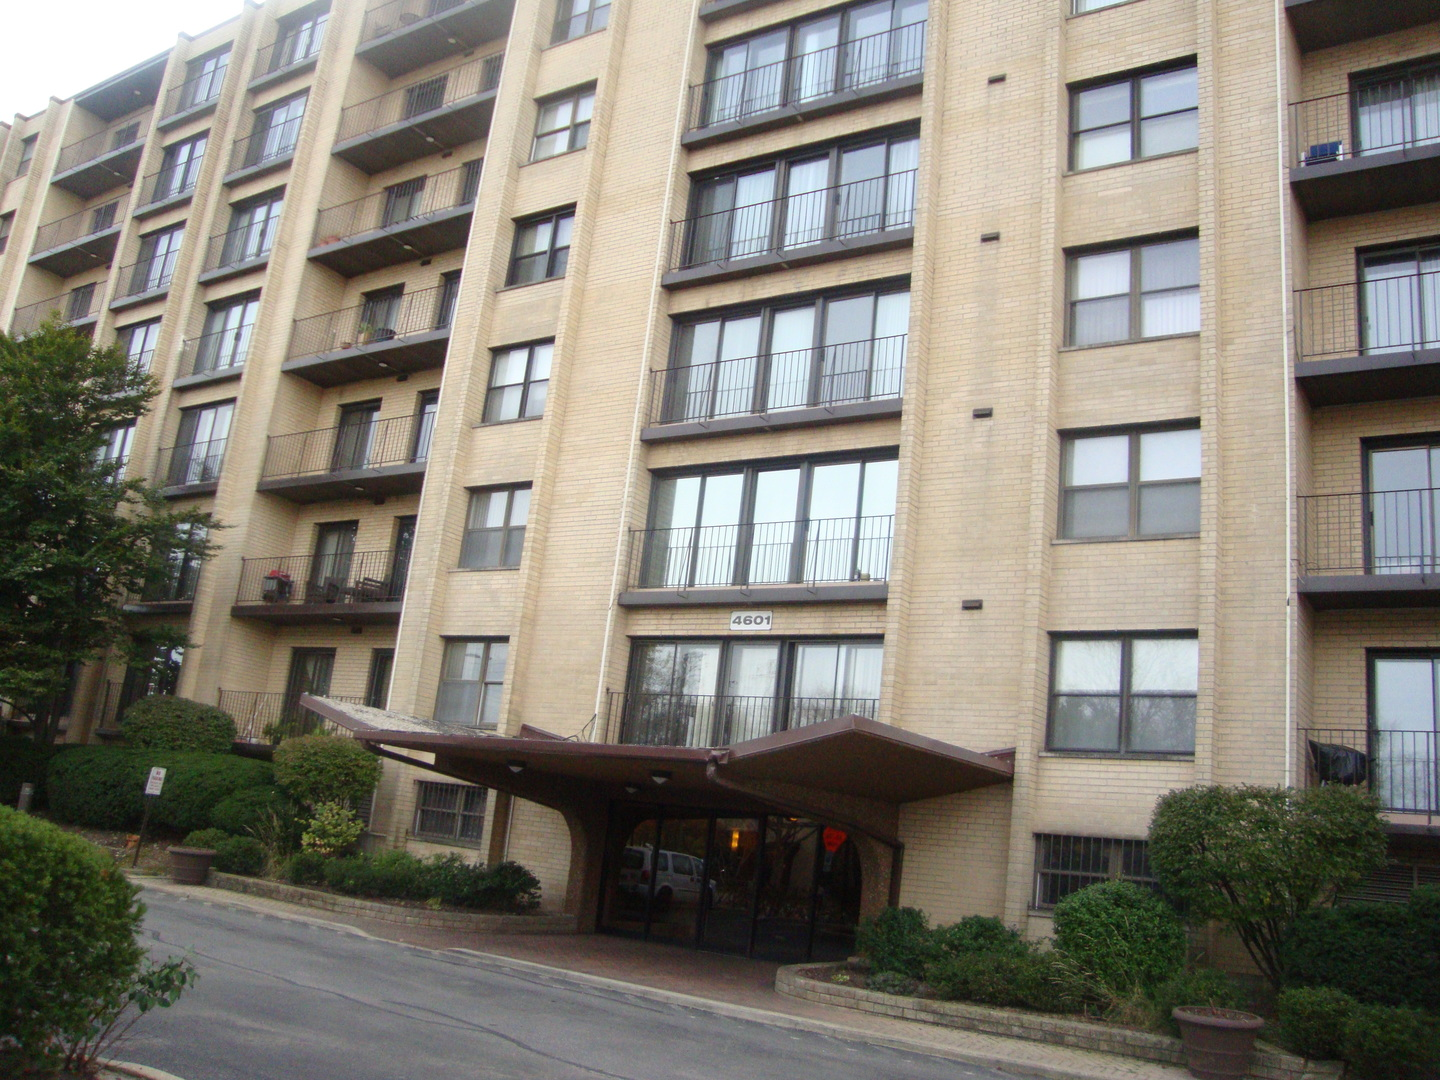 4601 West Touhy Avenue Lincolnwood, IL 60712